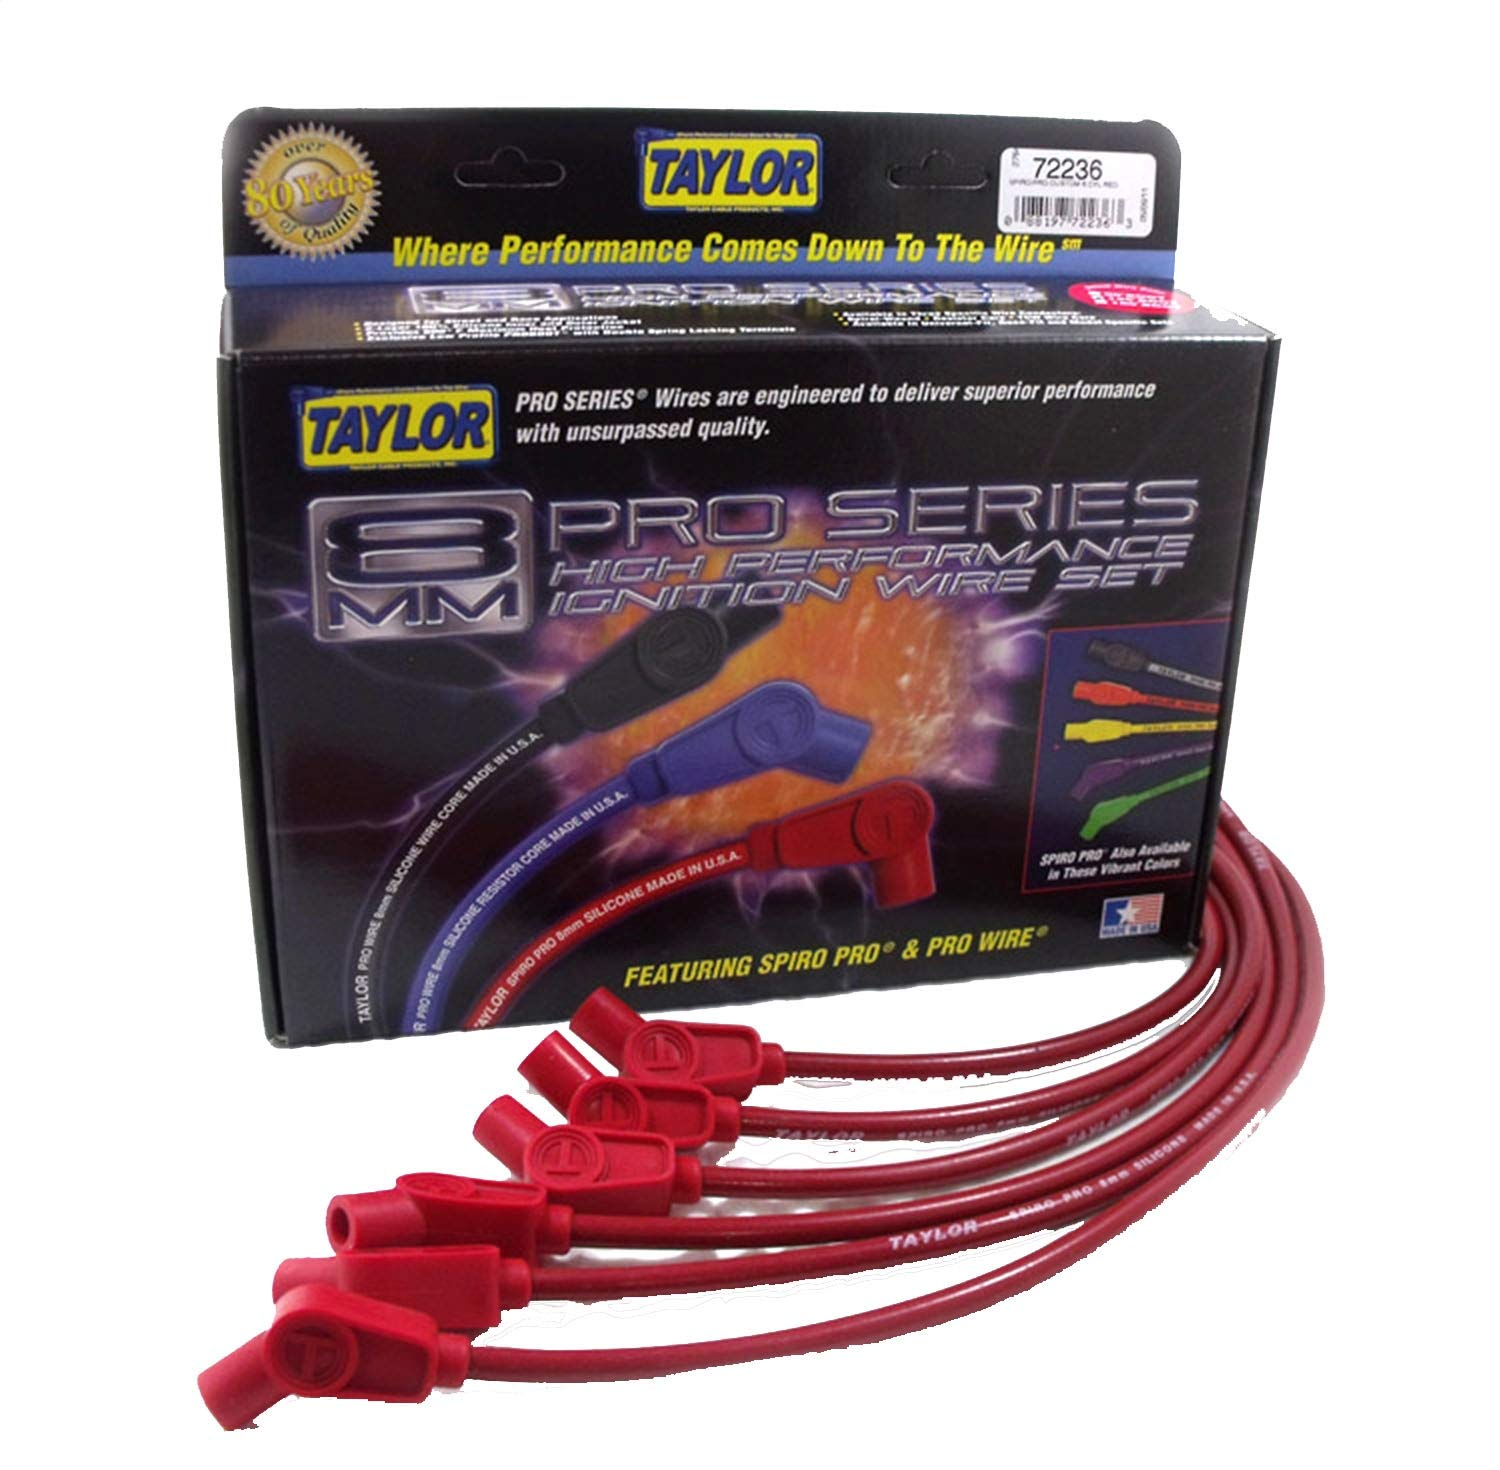 Taylor Cable 74205 Spiro-Pro Red Spark Plug Wire Set